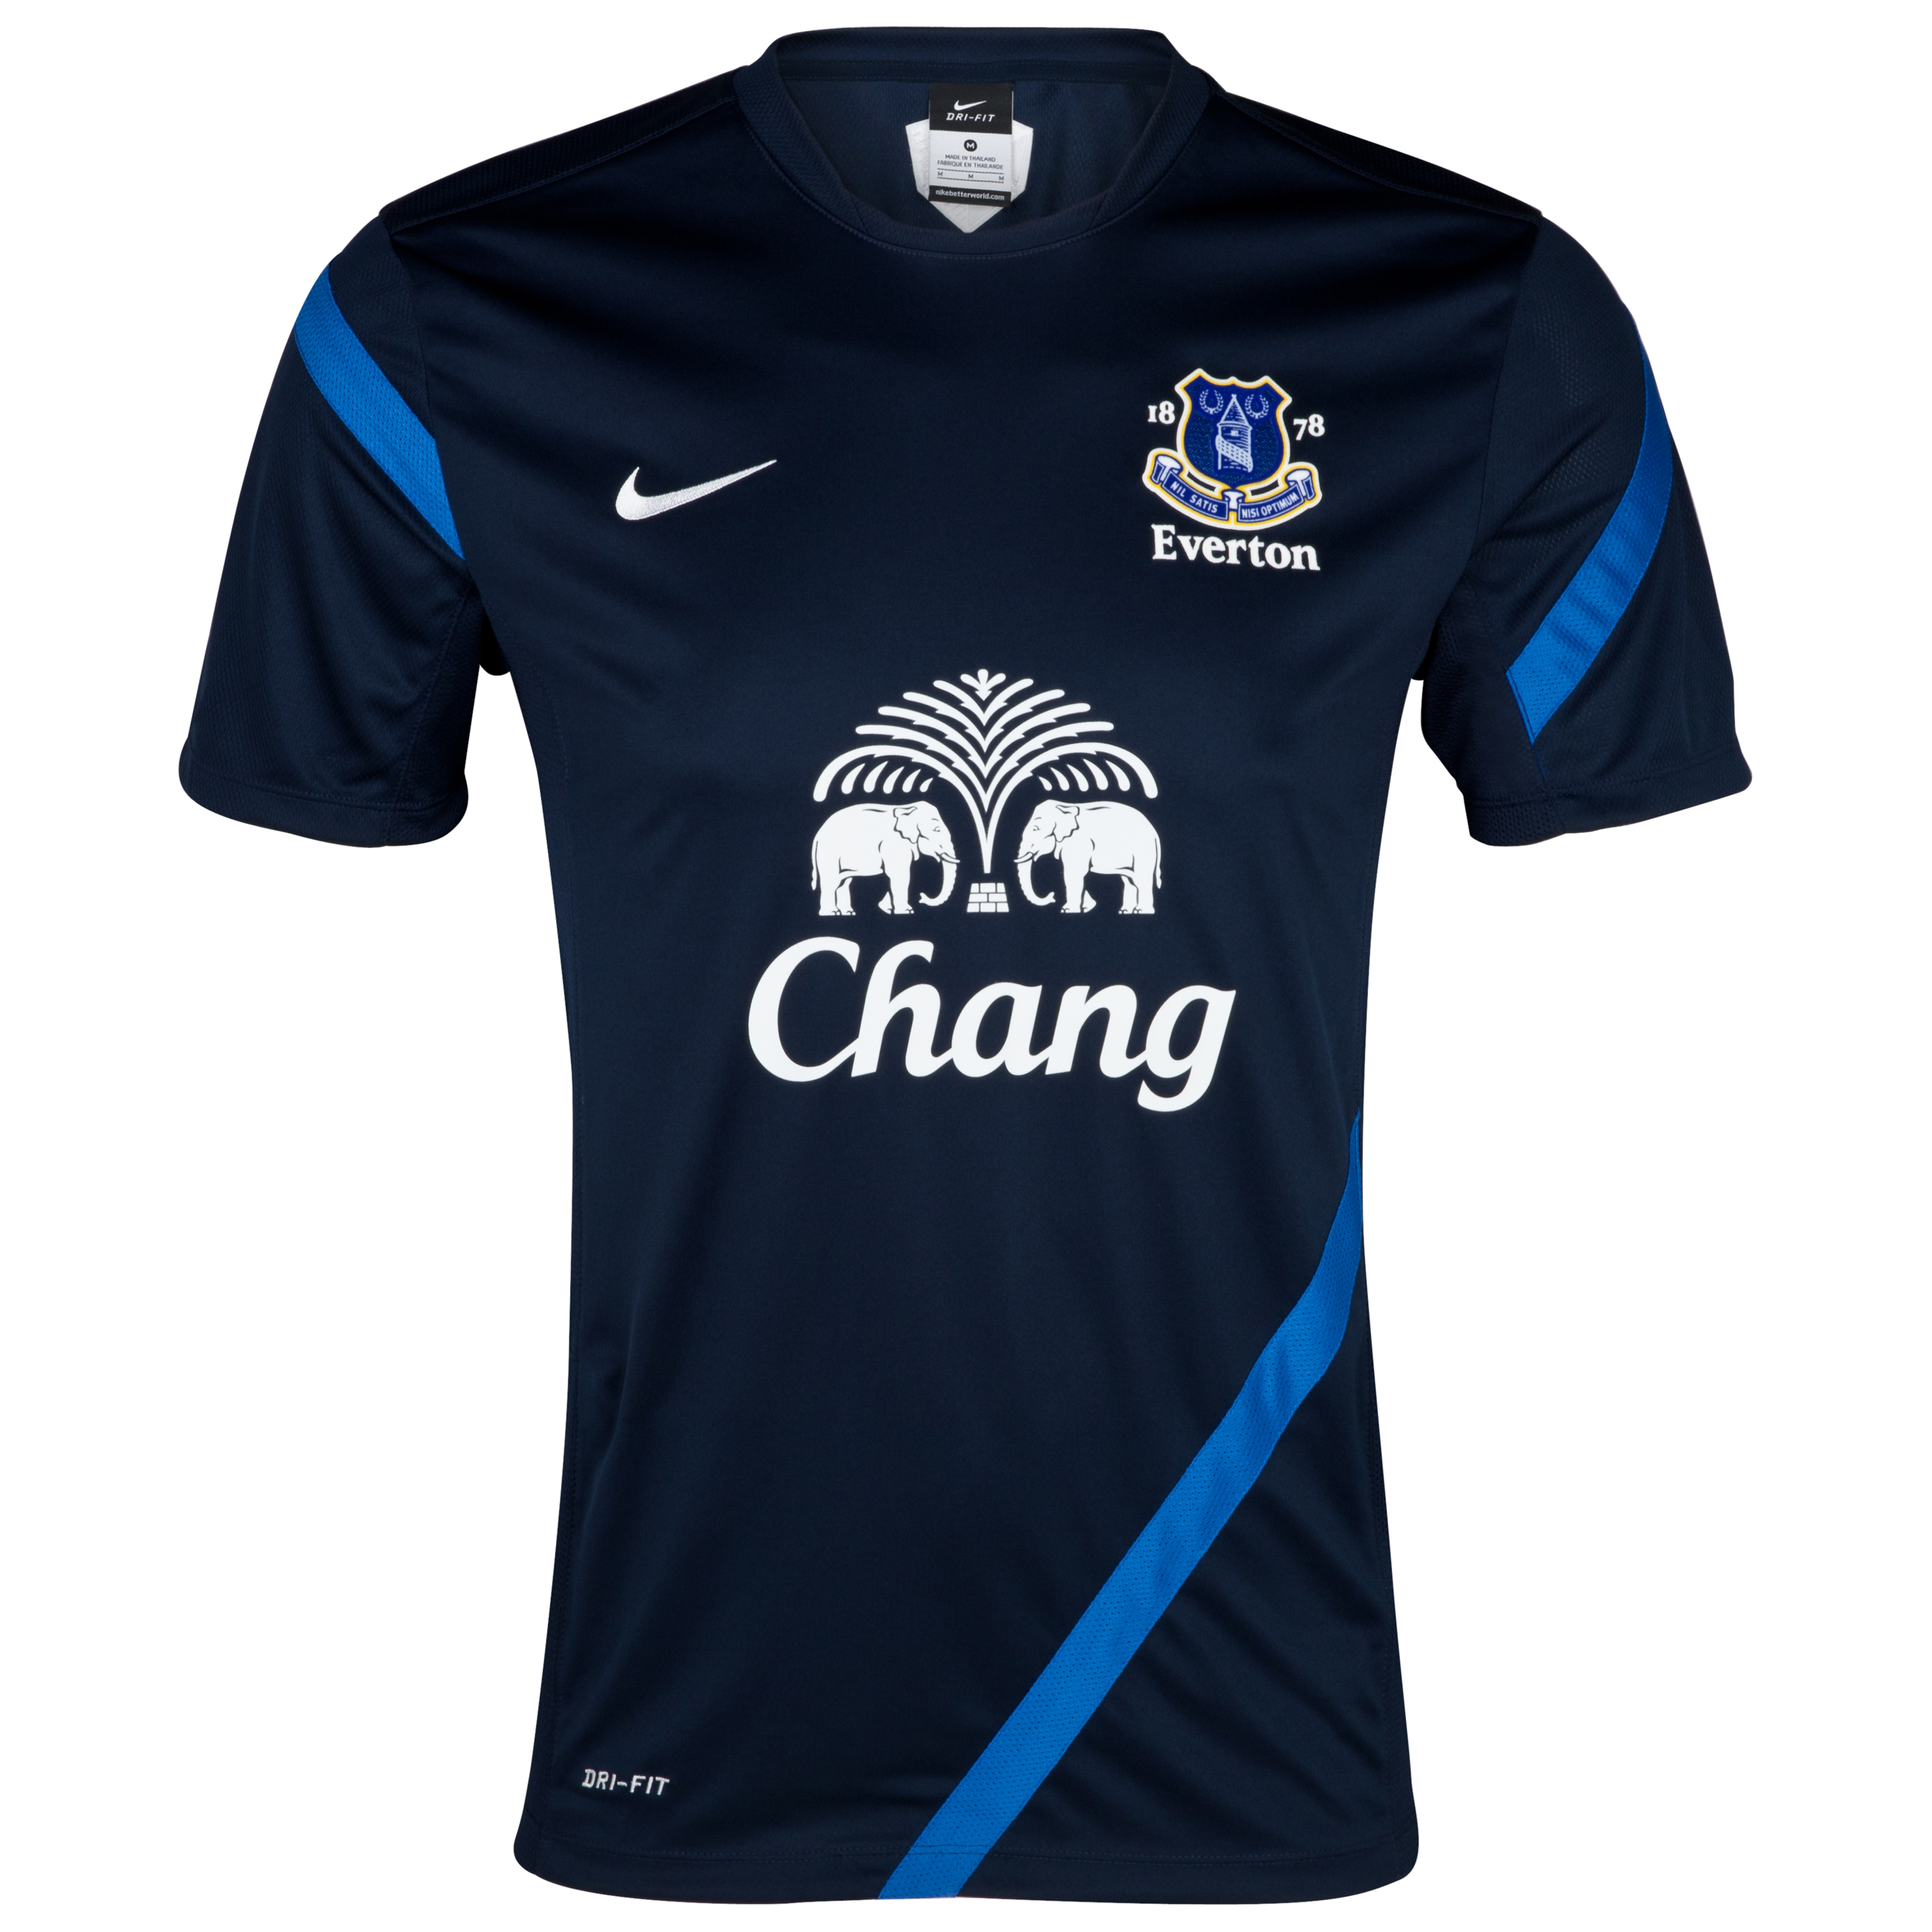 Everton Training T-Shirt - Obsidian/Royal Blue/White